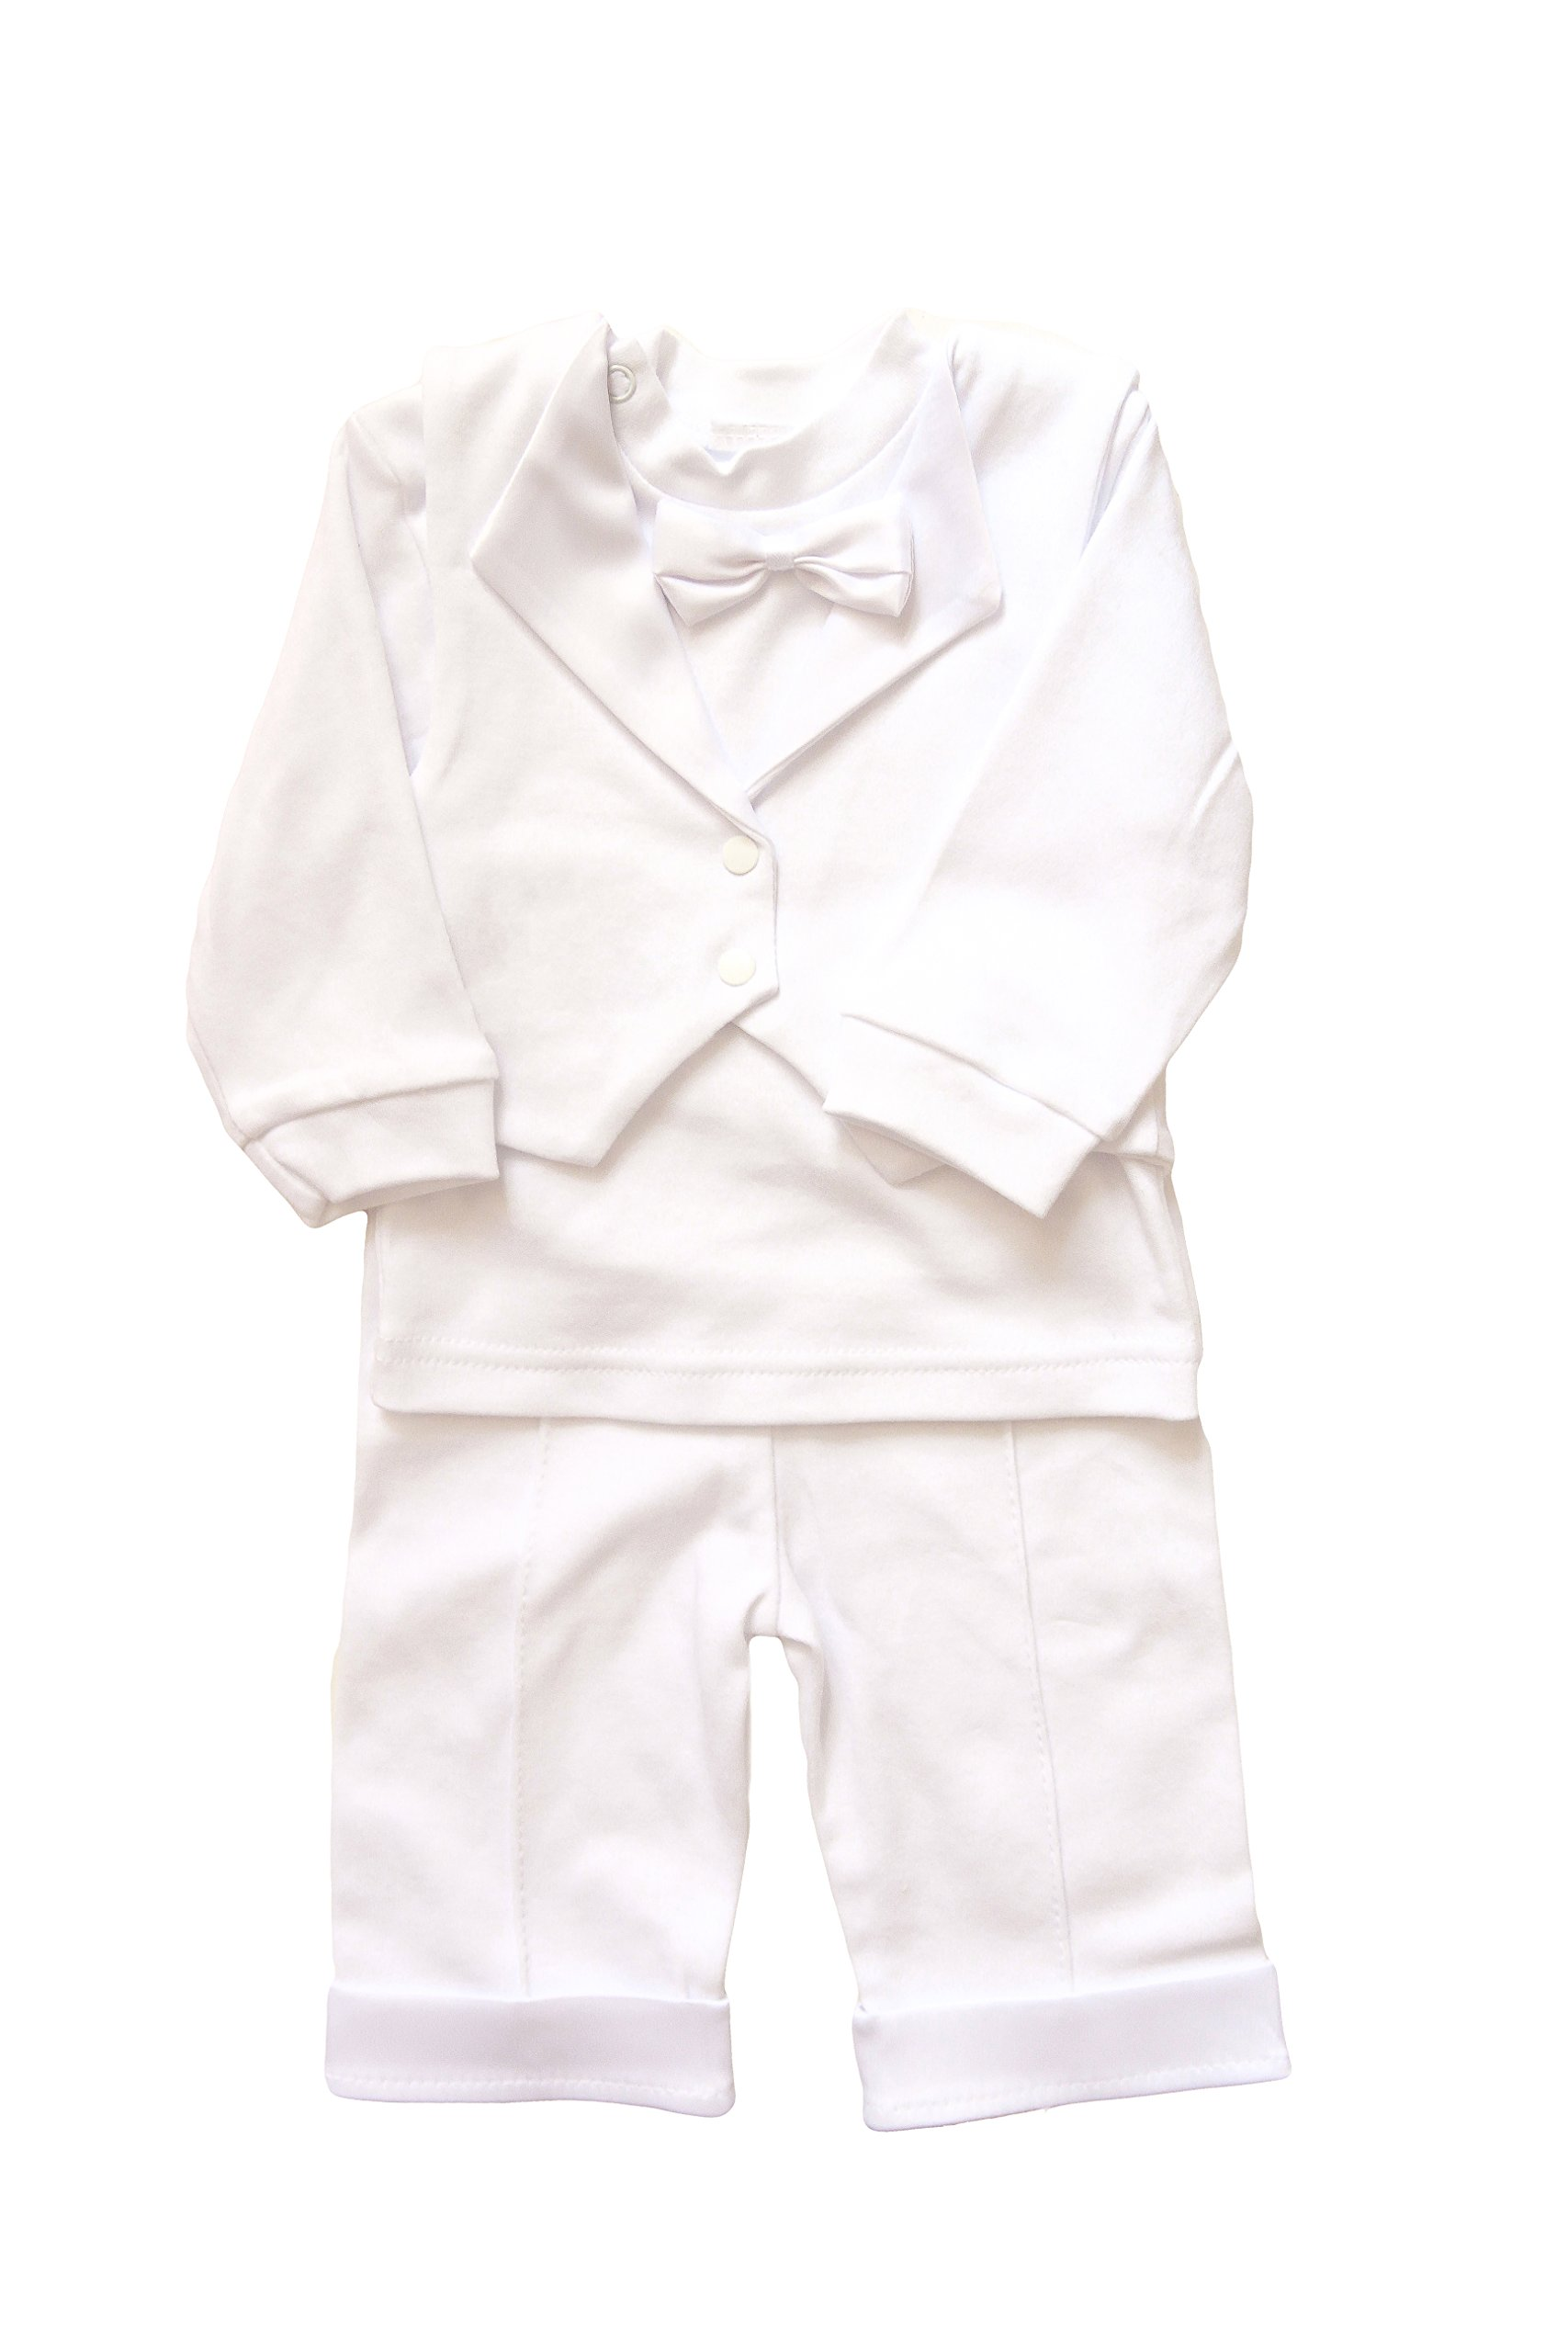 Baby Boy Christening Outfit Patterns Sewing Patterns For